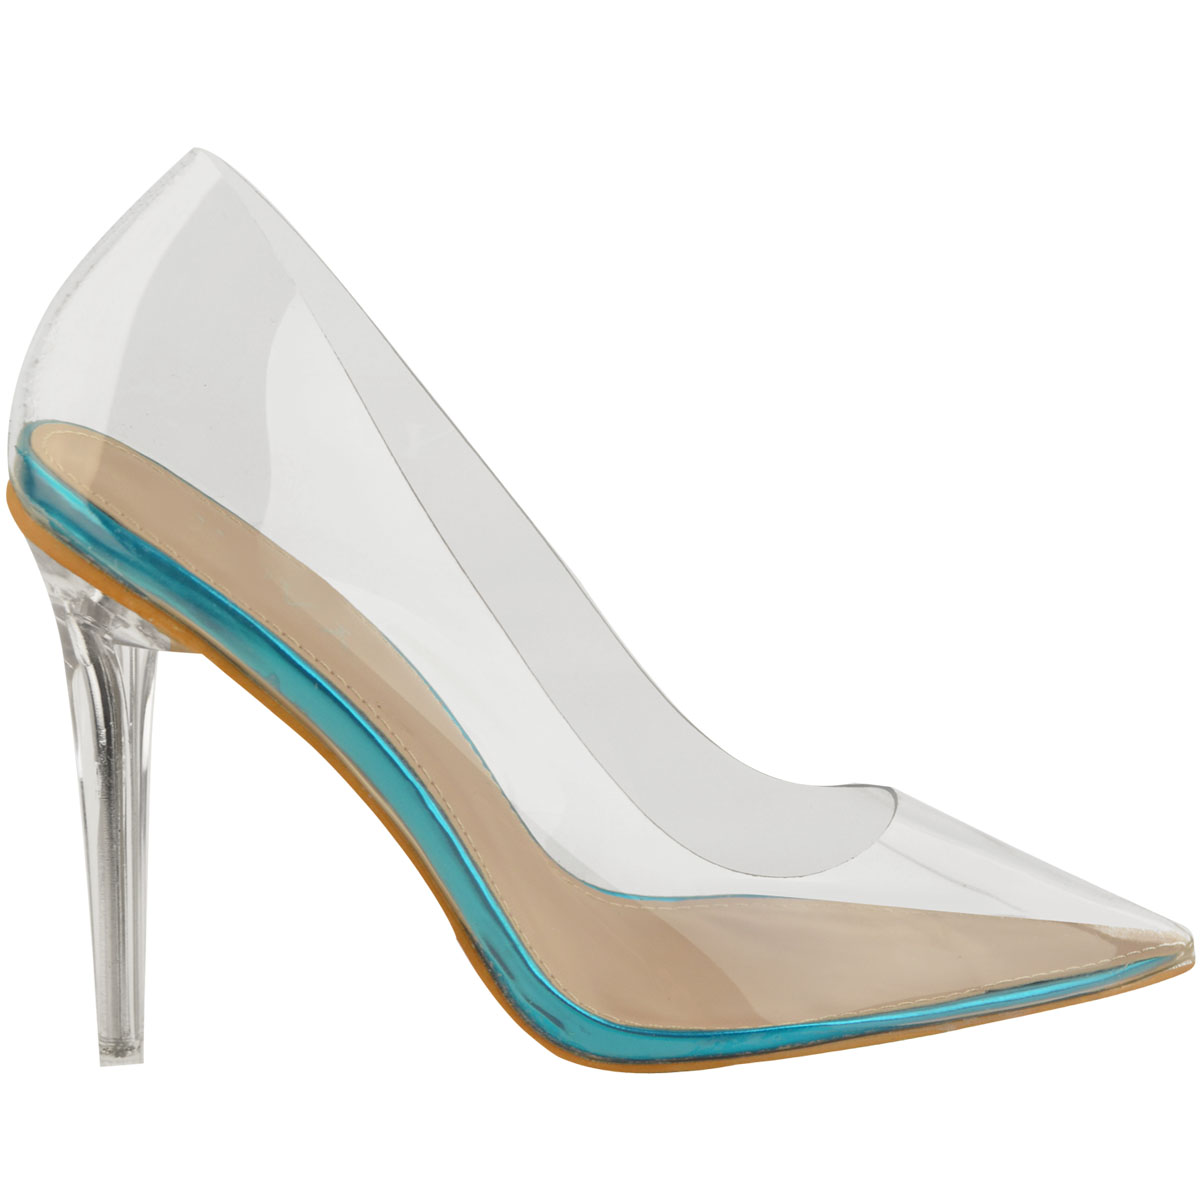 Womens-Ladies-Clear-Perspex-See-Through-High-Heel-Party-Sandals-Court-Shoes thumbnail 7